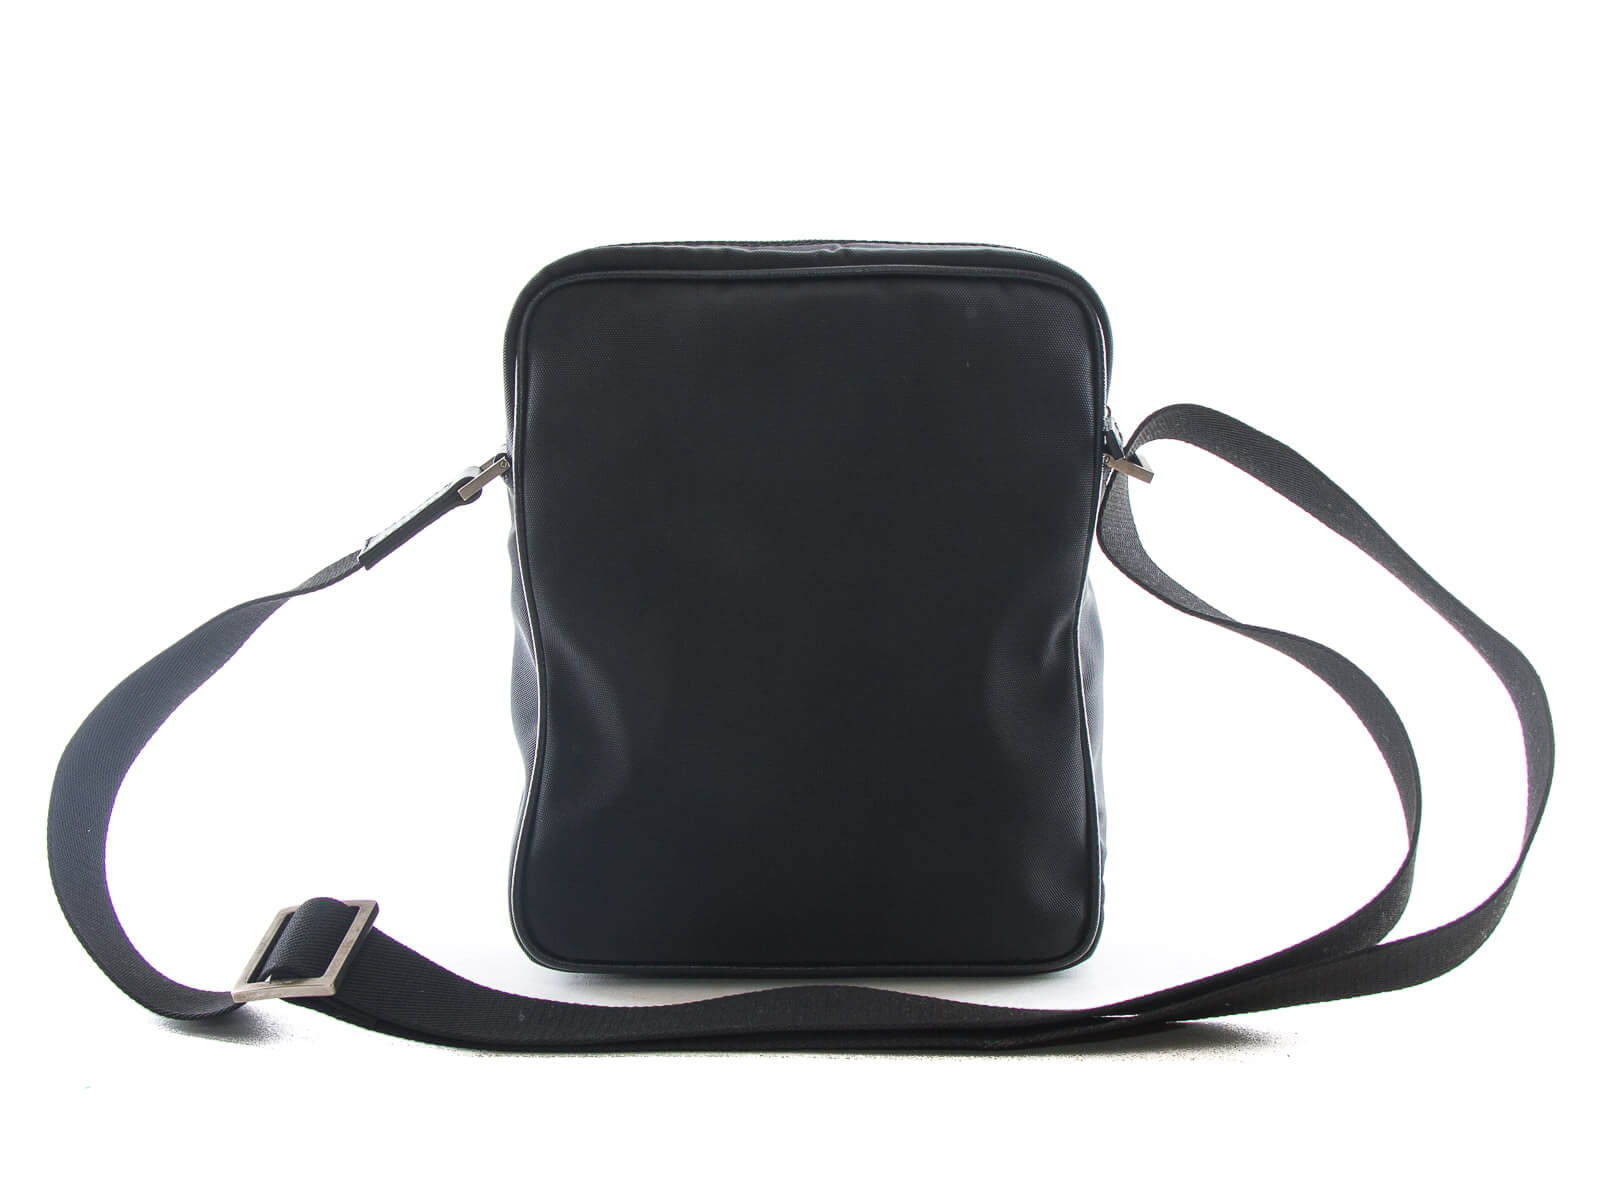 0bca109d20 ... Authentic Salvatore Ferragamo black leather nylon crossbody bag ...